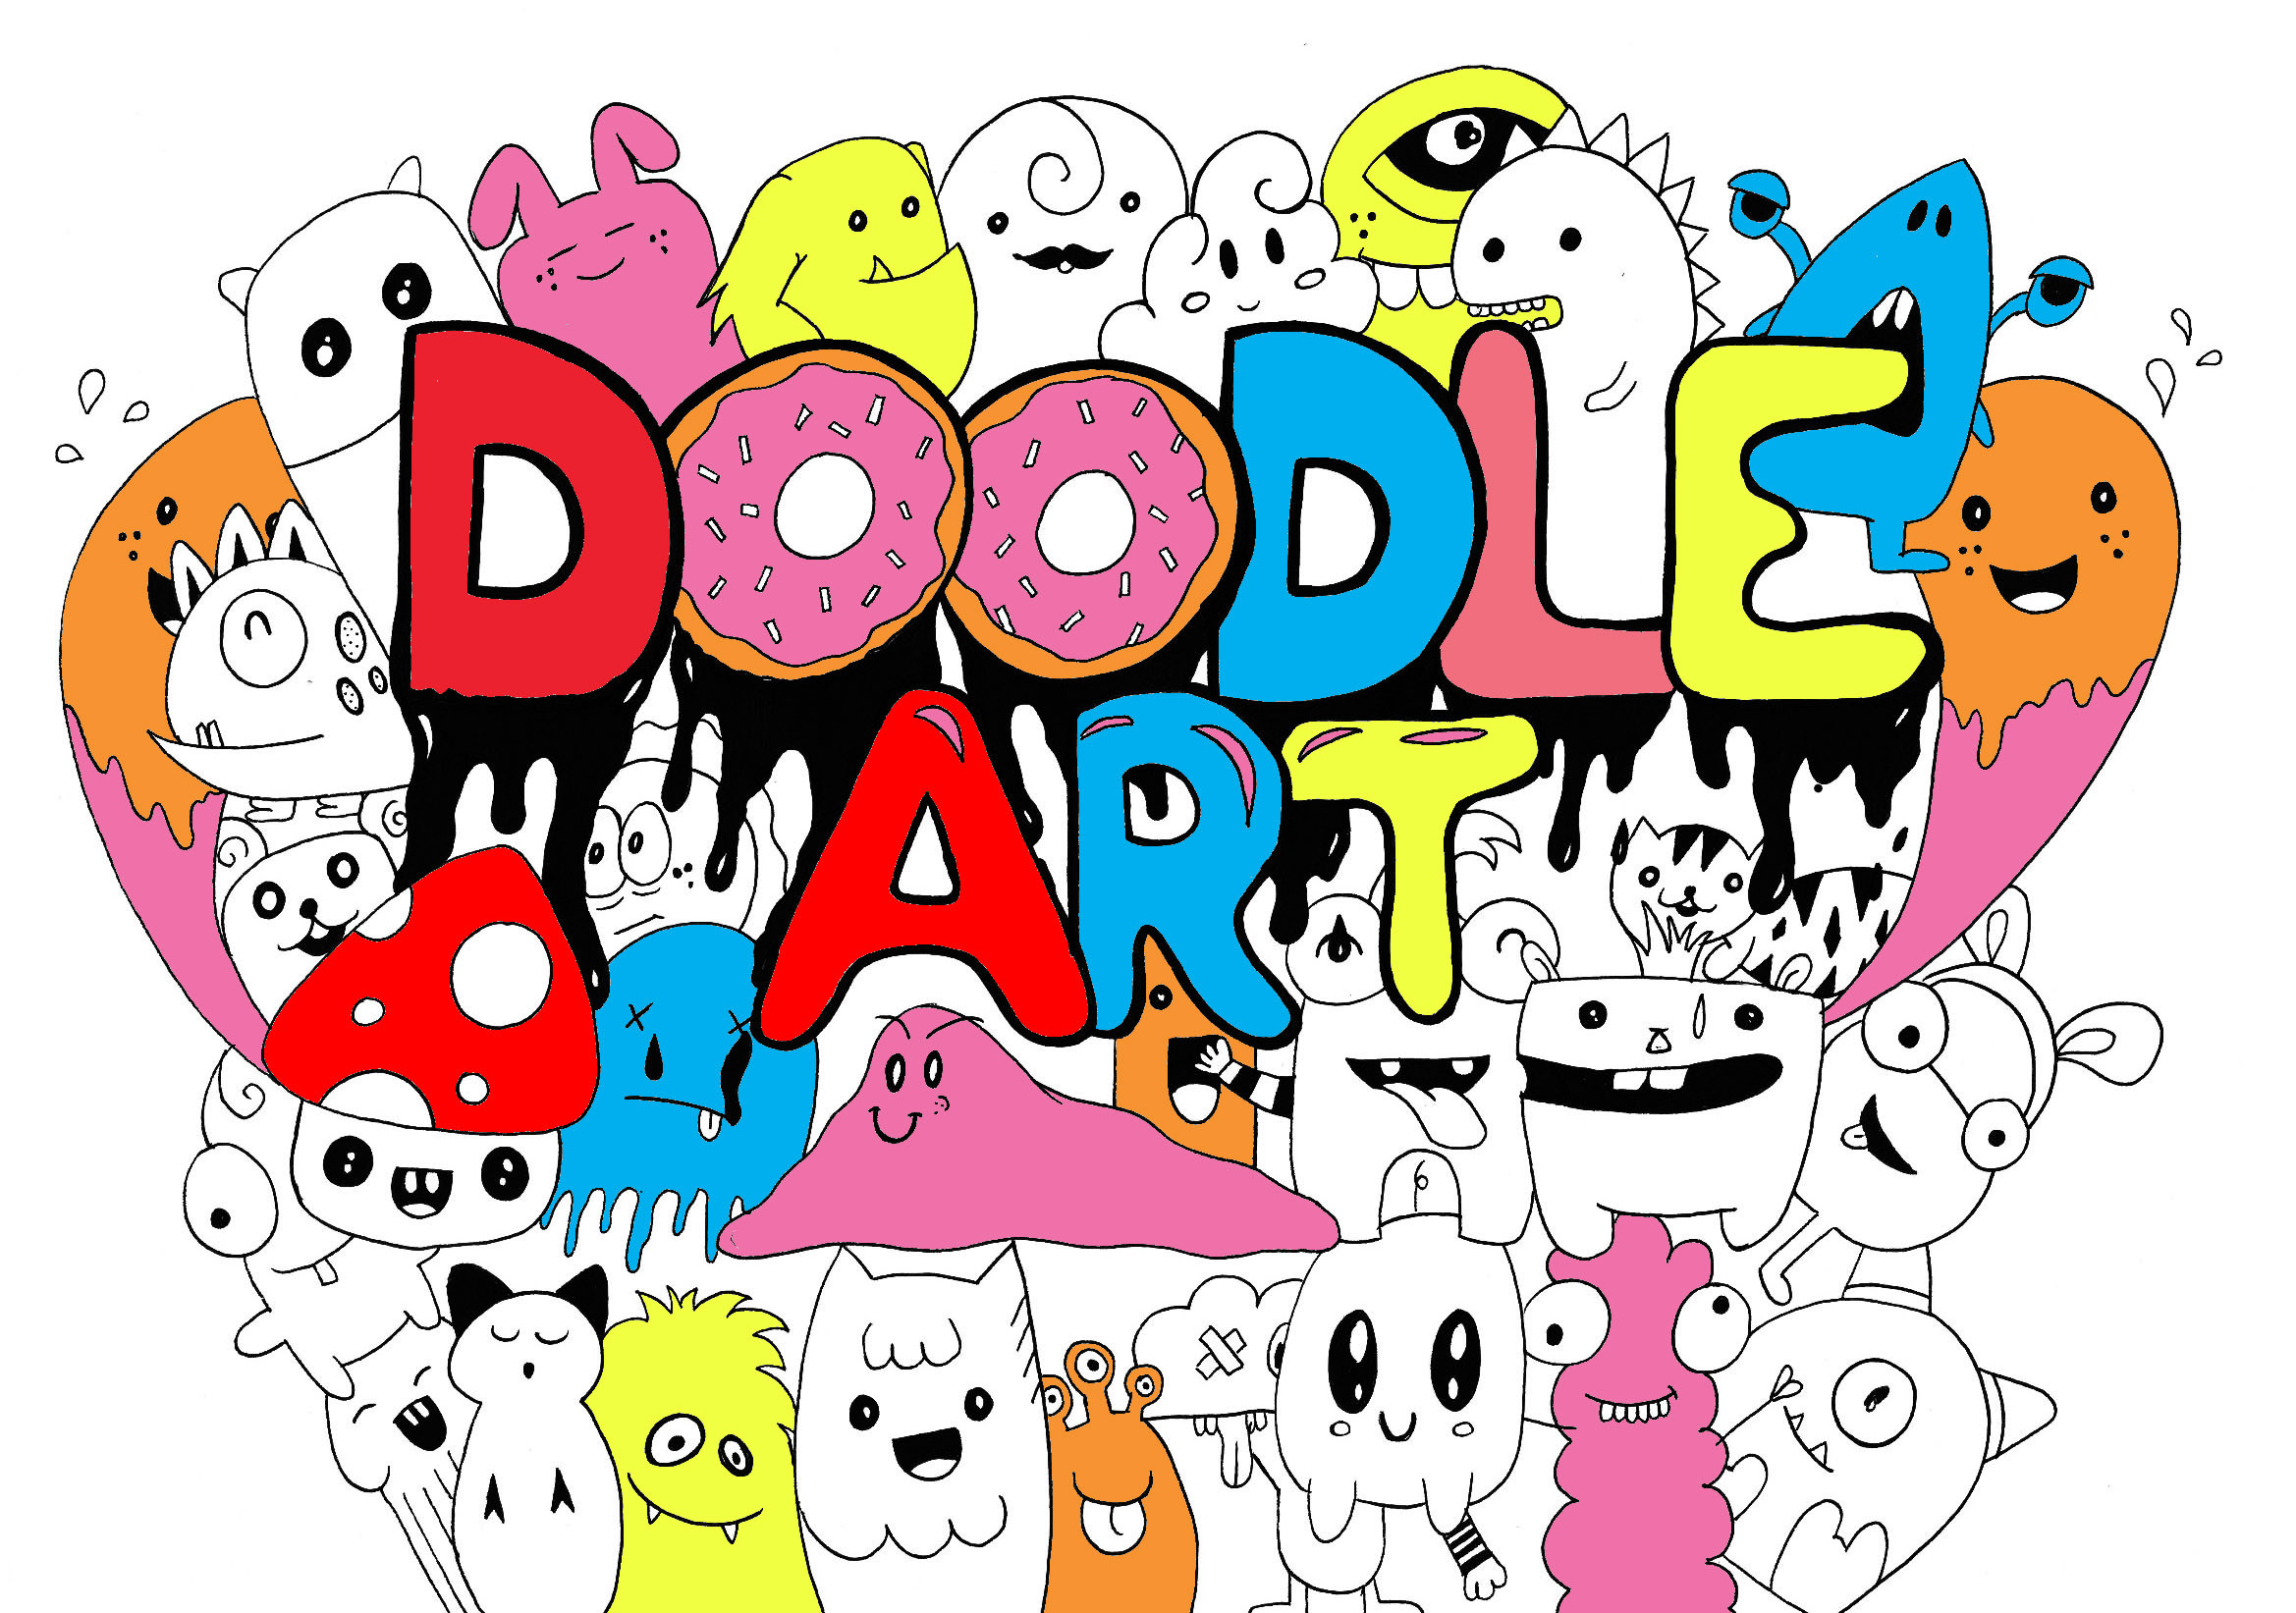 doodle colored wallpapers cute doodling coloring pages doodles adults drawings google graffiti cool designs il le